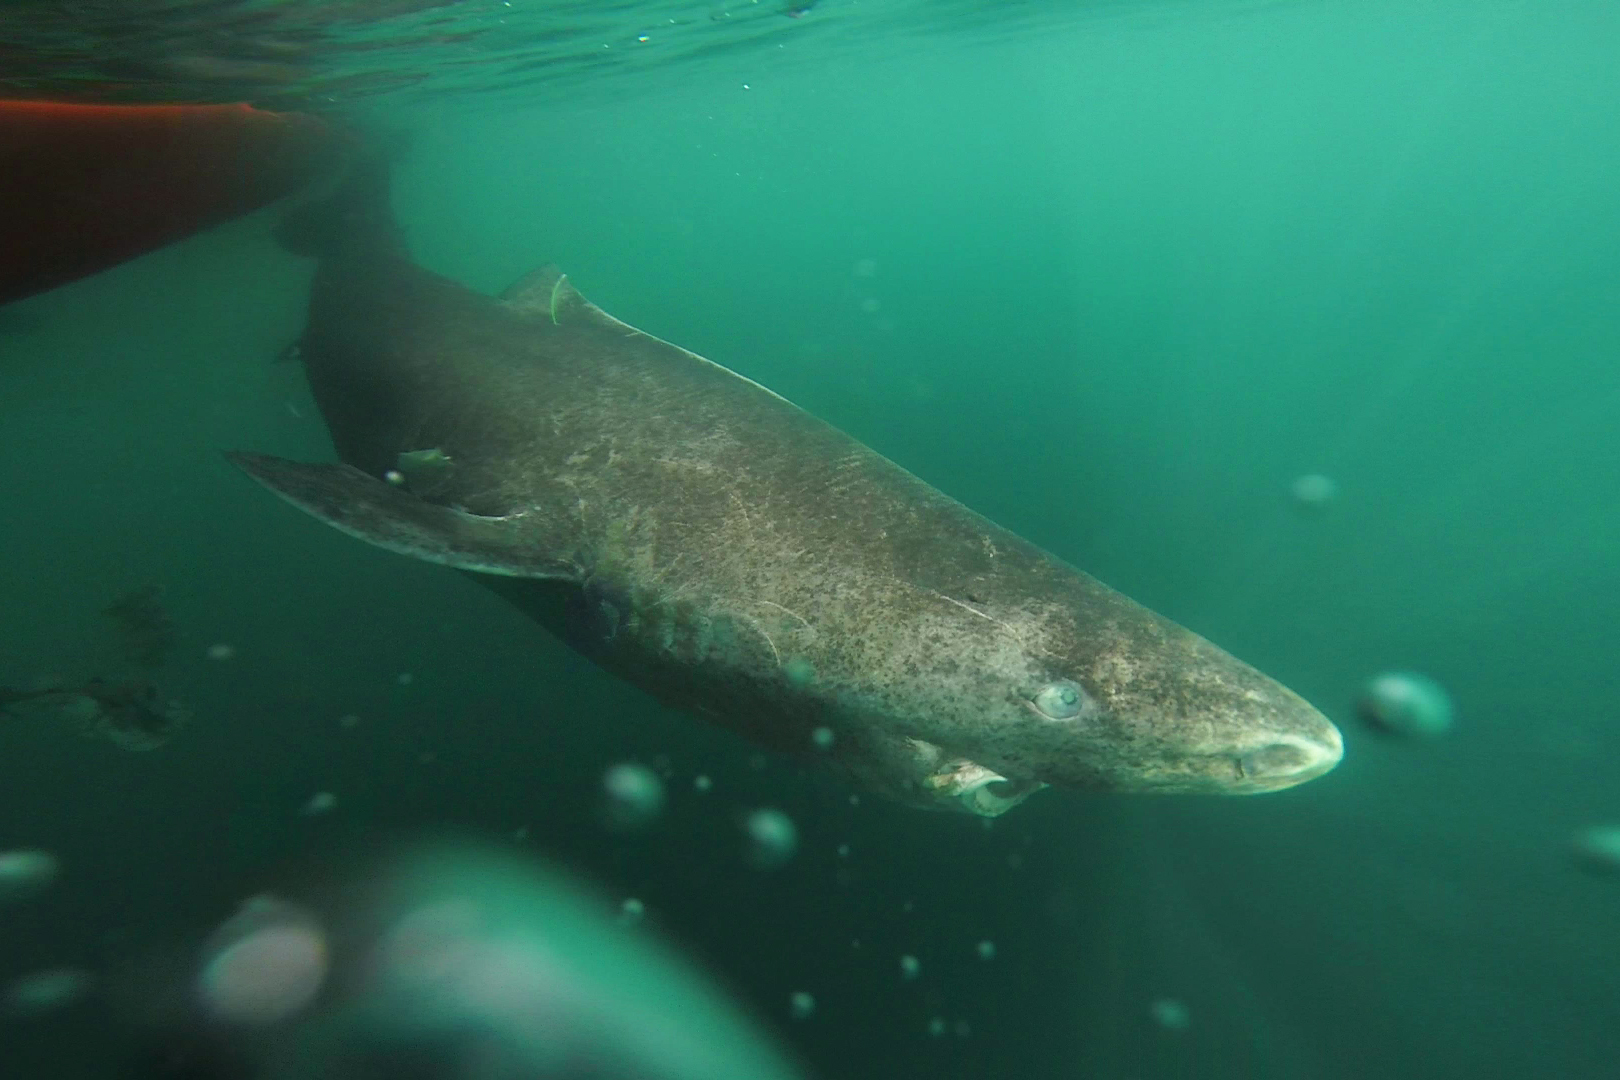 Greenland shark revealed to have longest life expectancy of all vertebrates